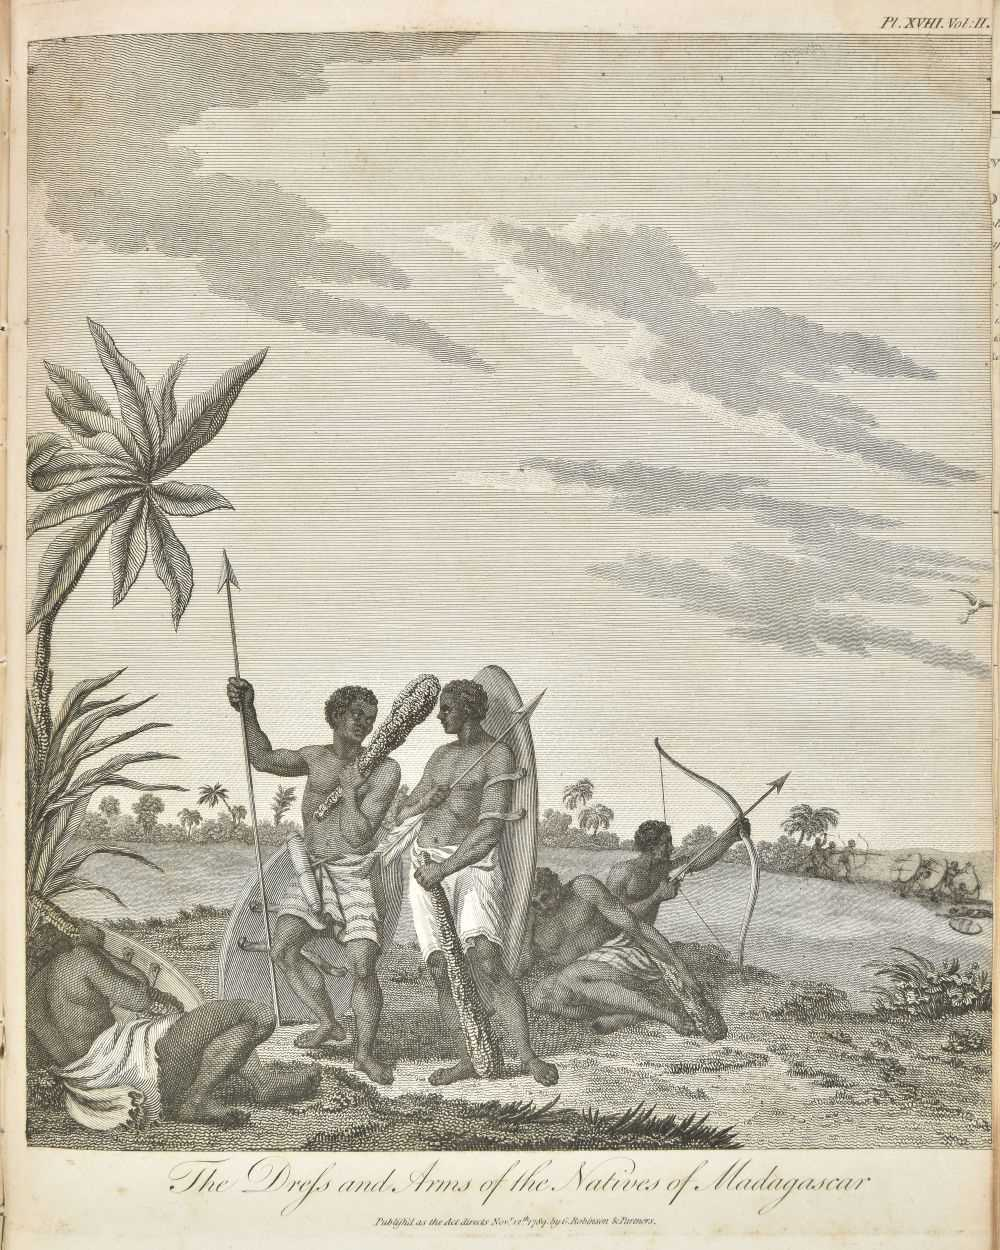 Lot 4-Benyowsky (Maurice Auguste, comte de). [Memoirs and Travels..., 1790]